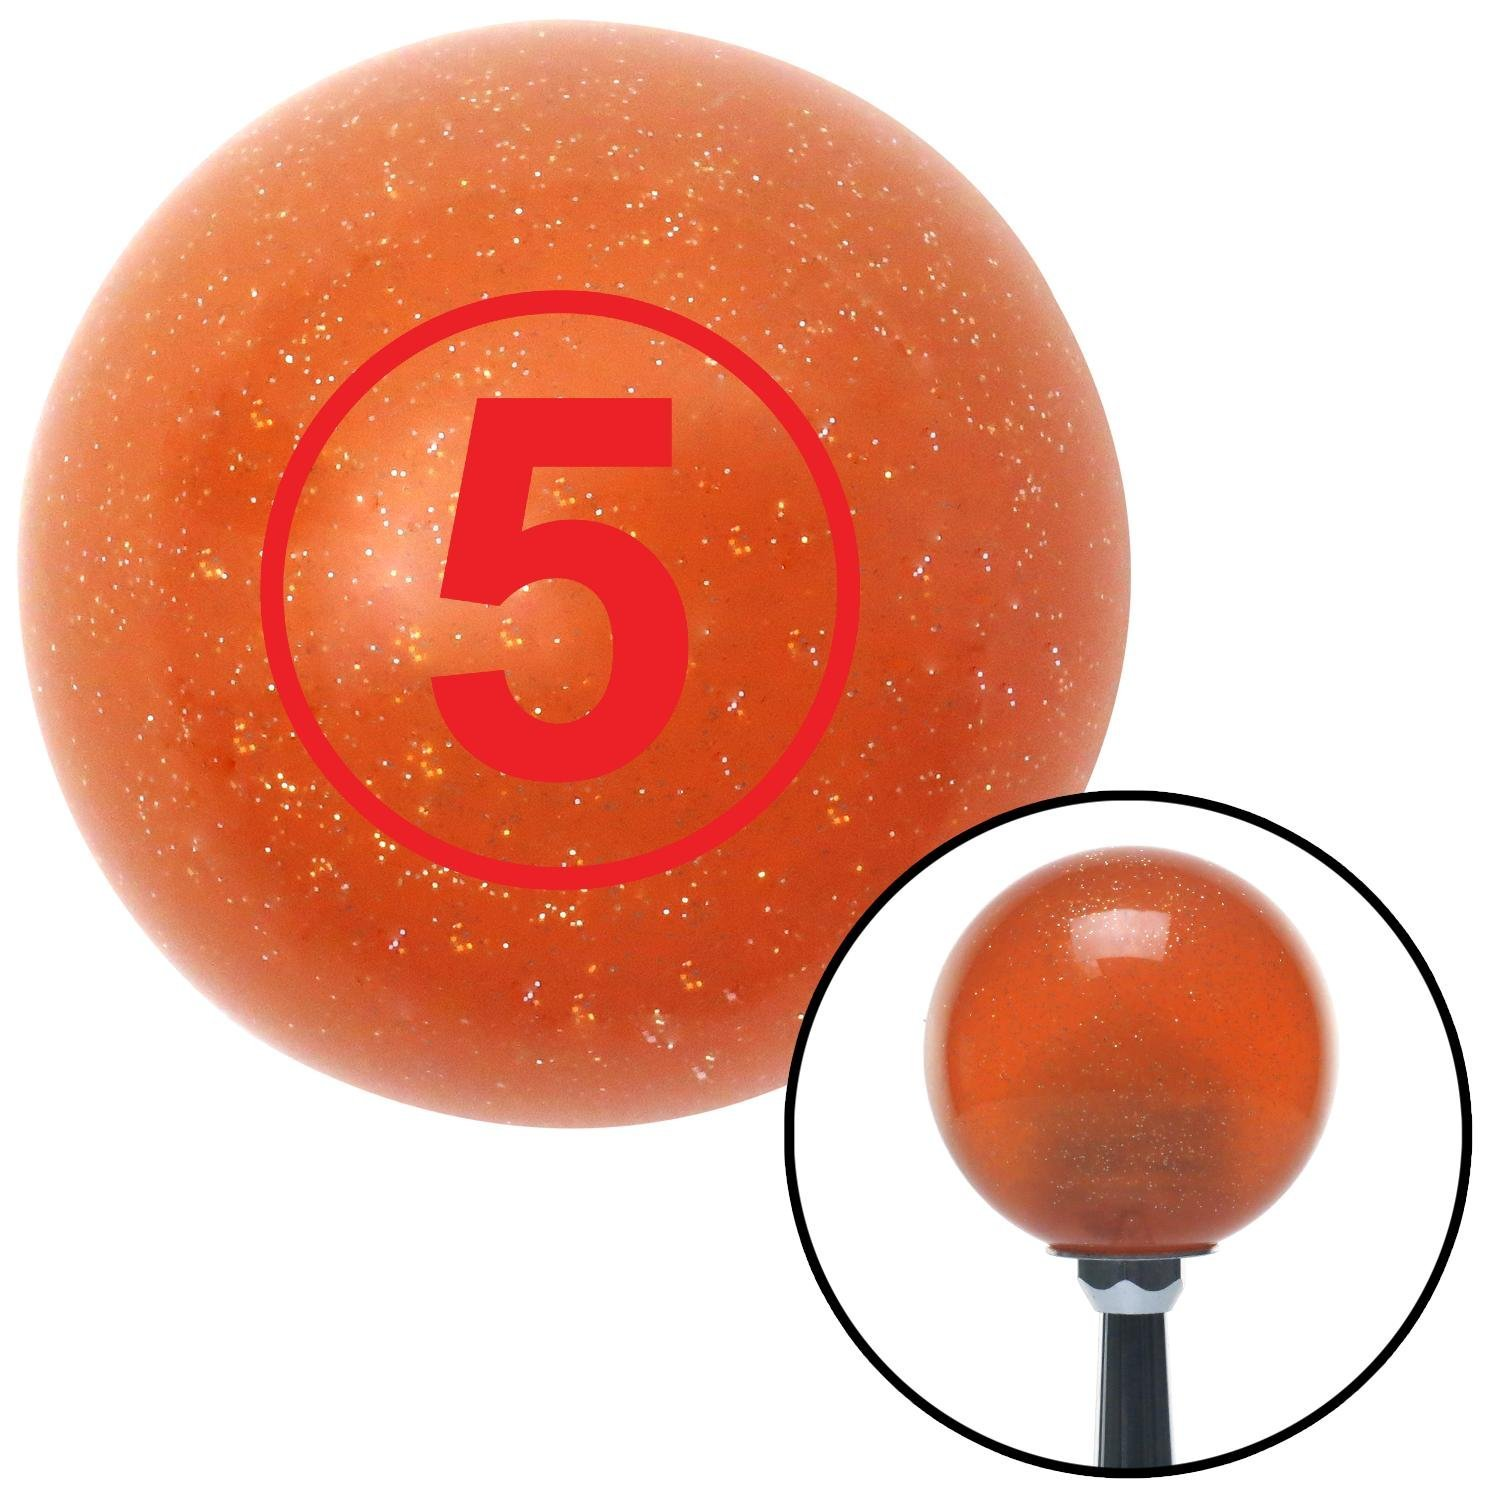 Red Dragon Ball Z - 6 Star American Shifter 141832 Clear Metal Flake Shift Knob with M16 x 1.5 Insert